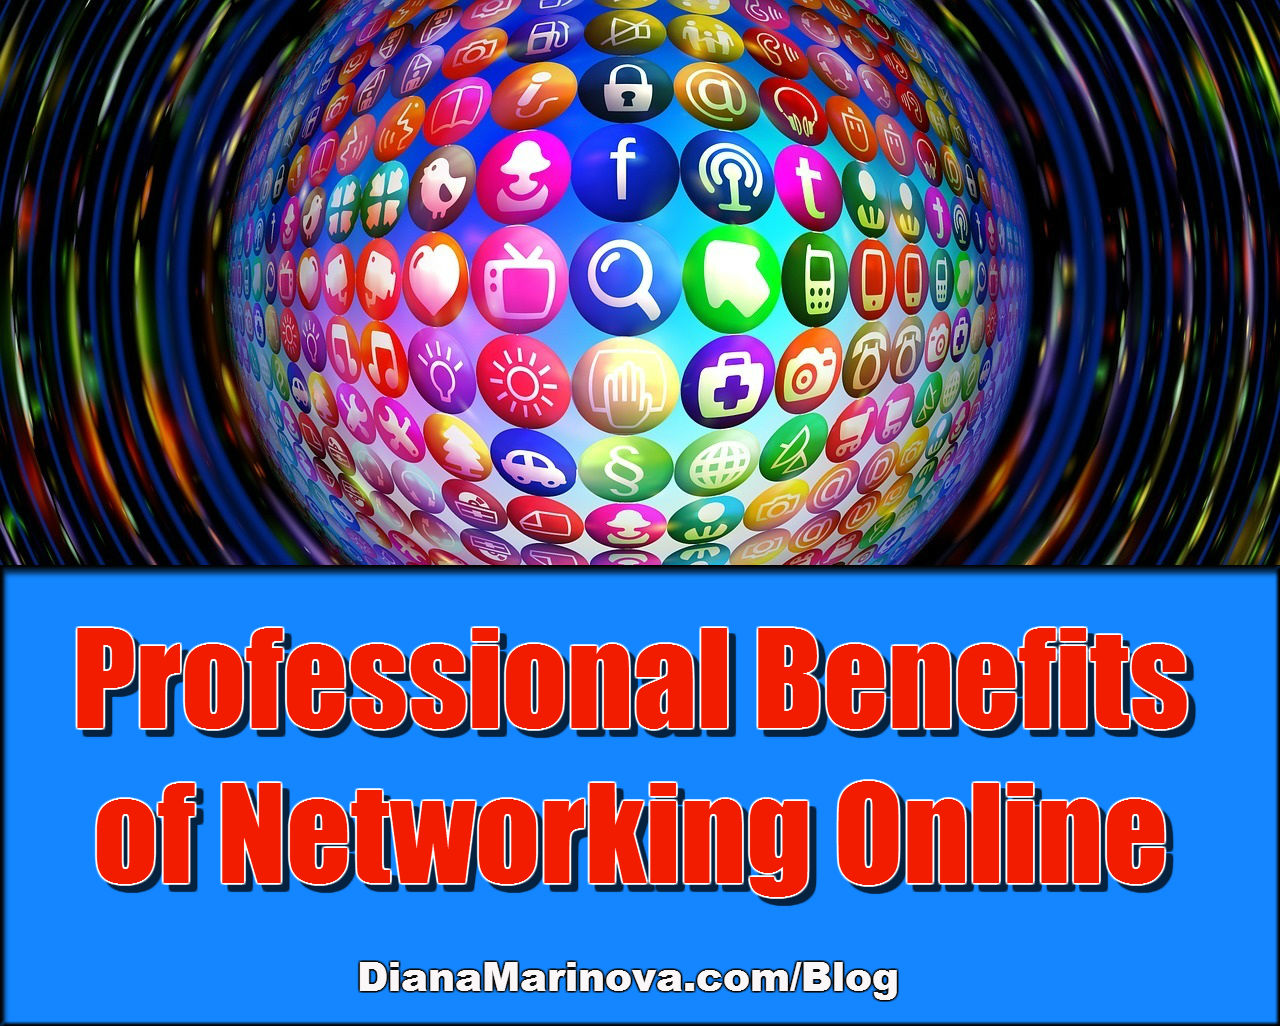 Professional Benefits of Networking Online